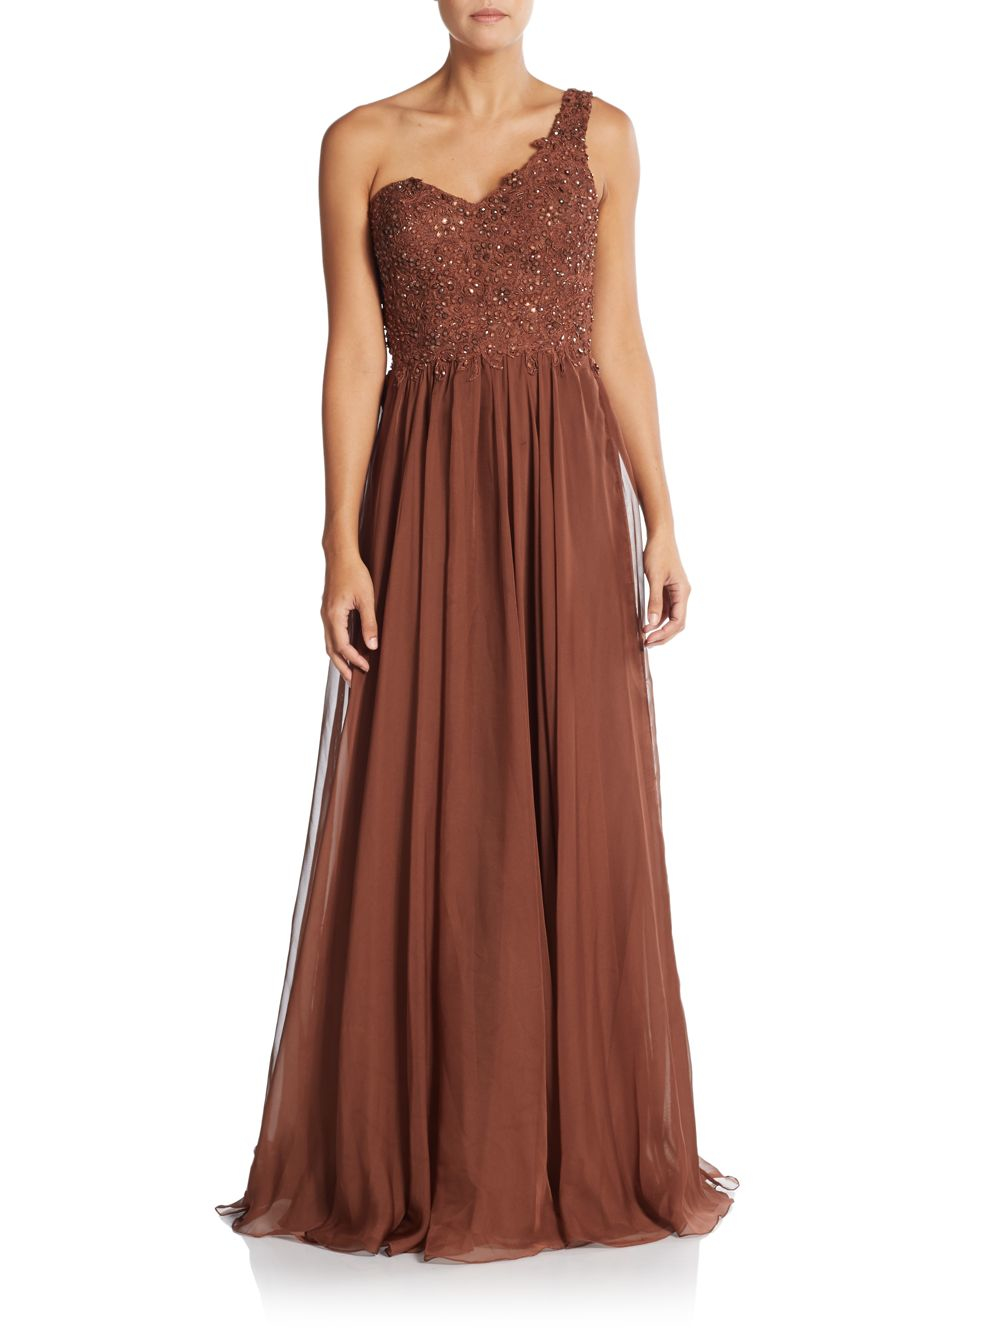 La femme one shoulder dress consider, that